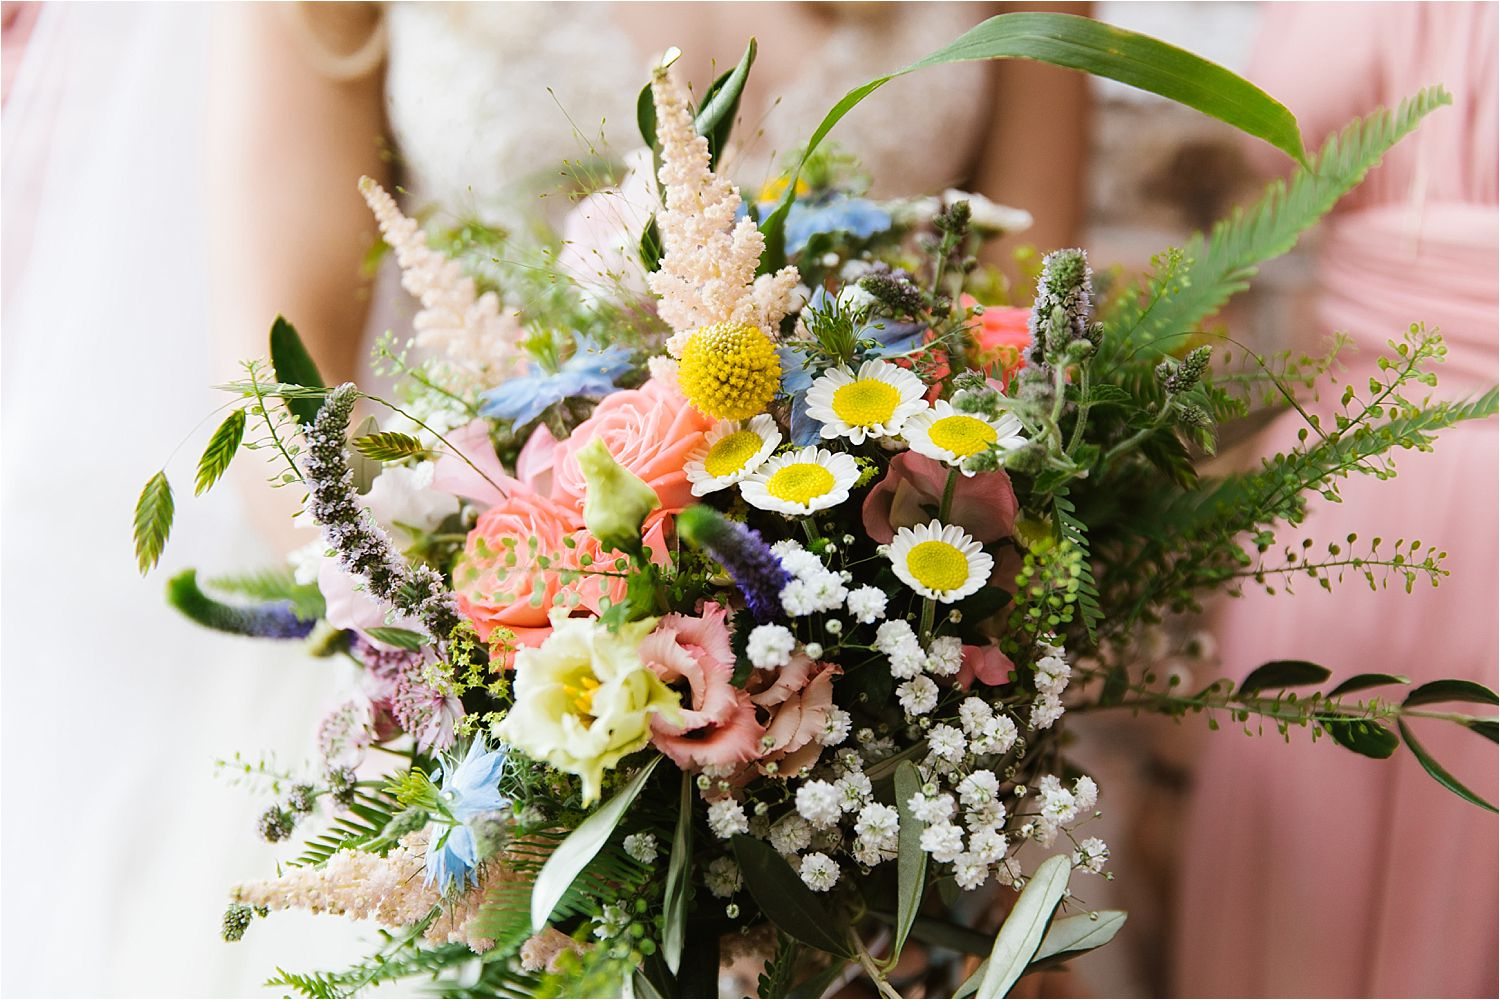 Beautiful natural bridal bouquet by Green Earth Flowers in Poynton Cheshire